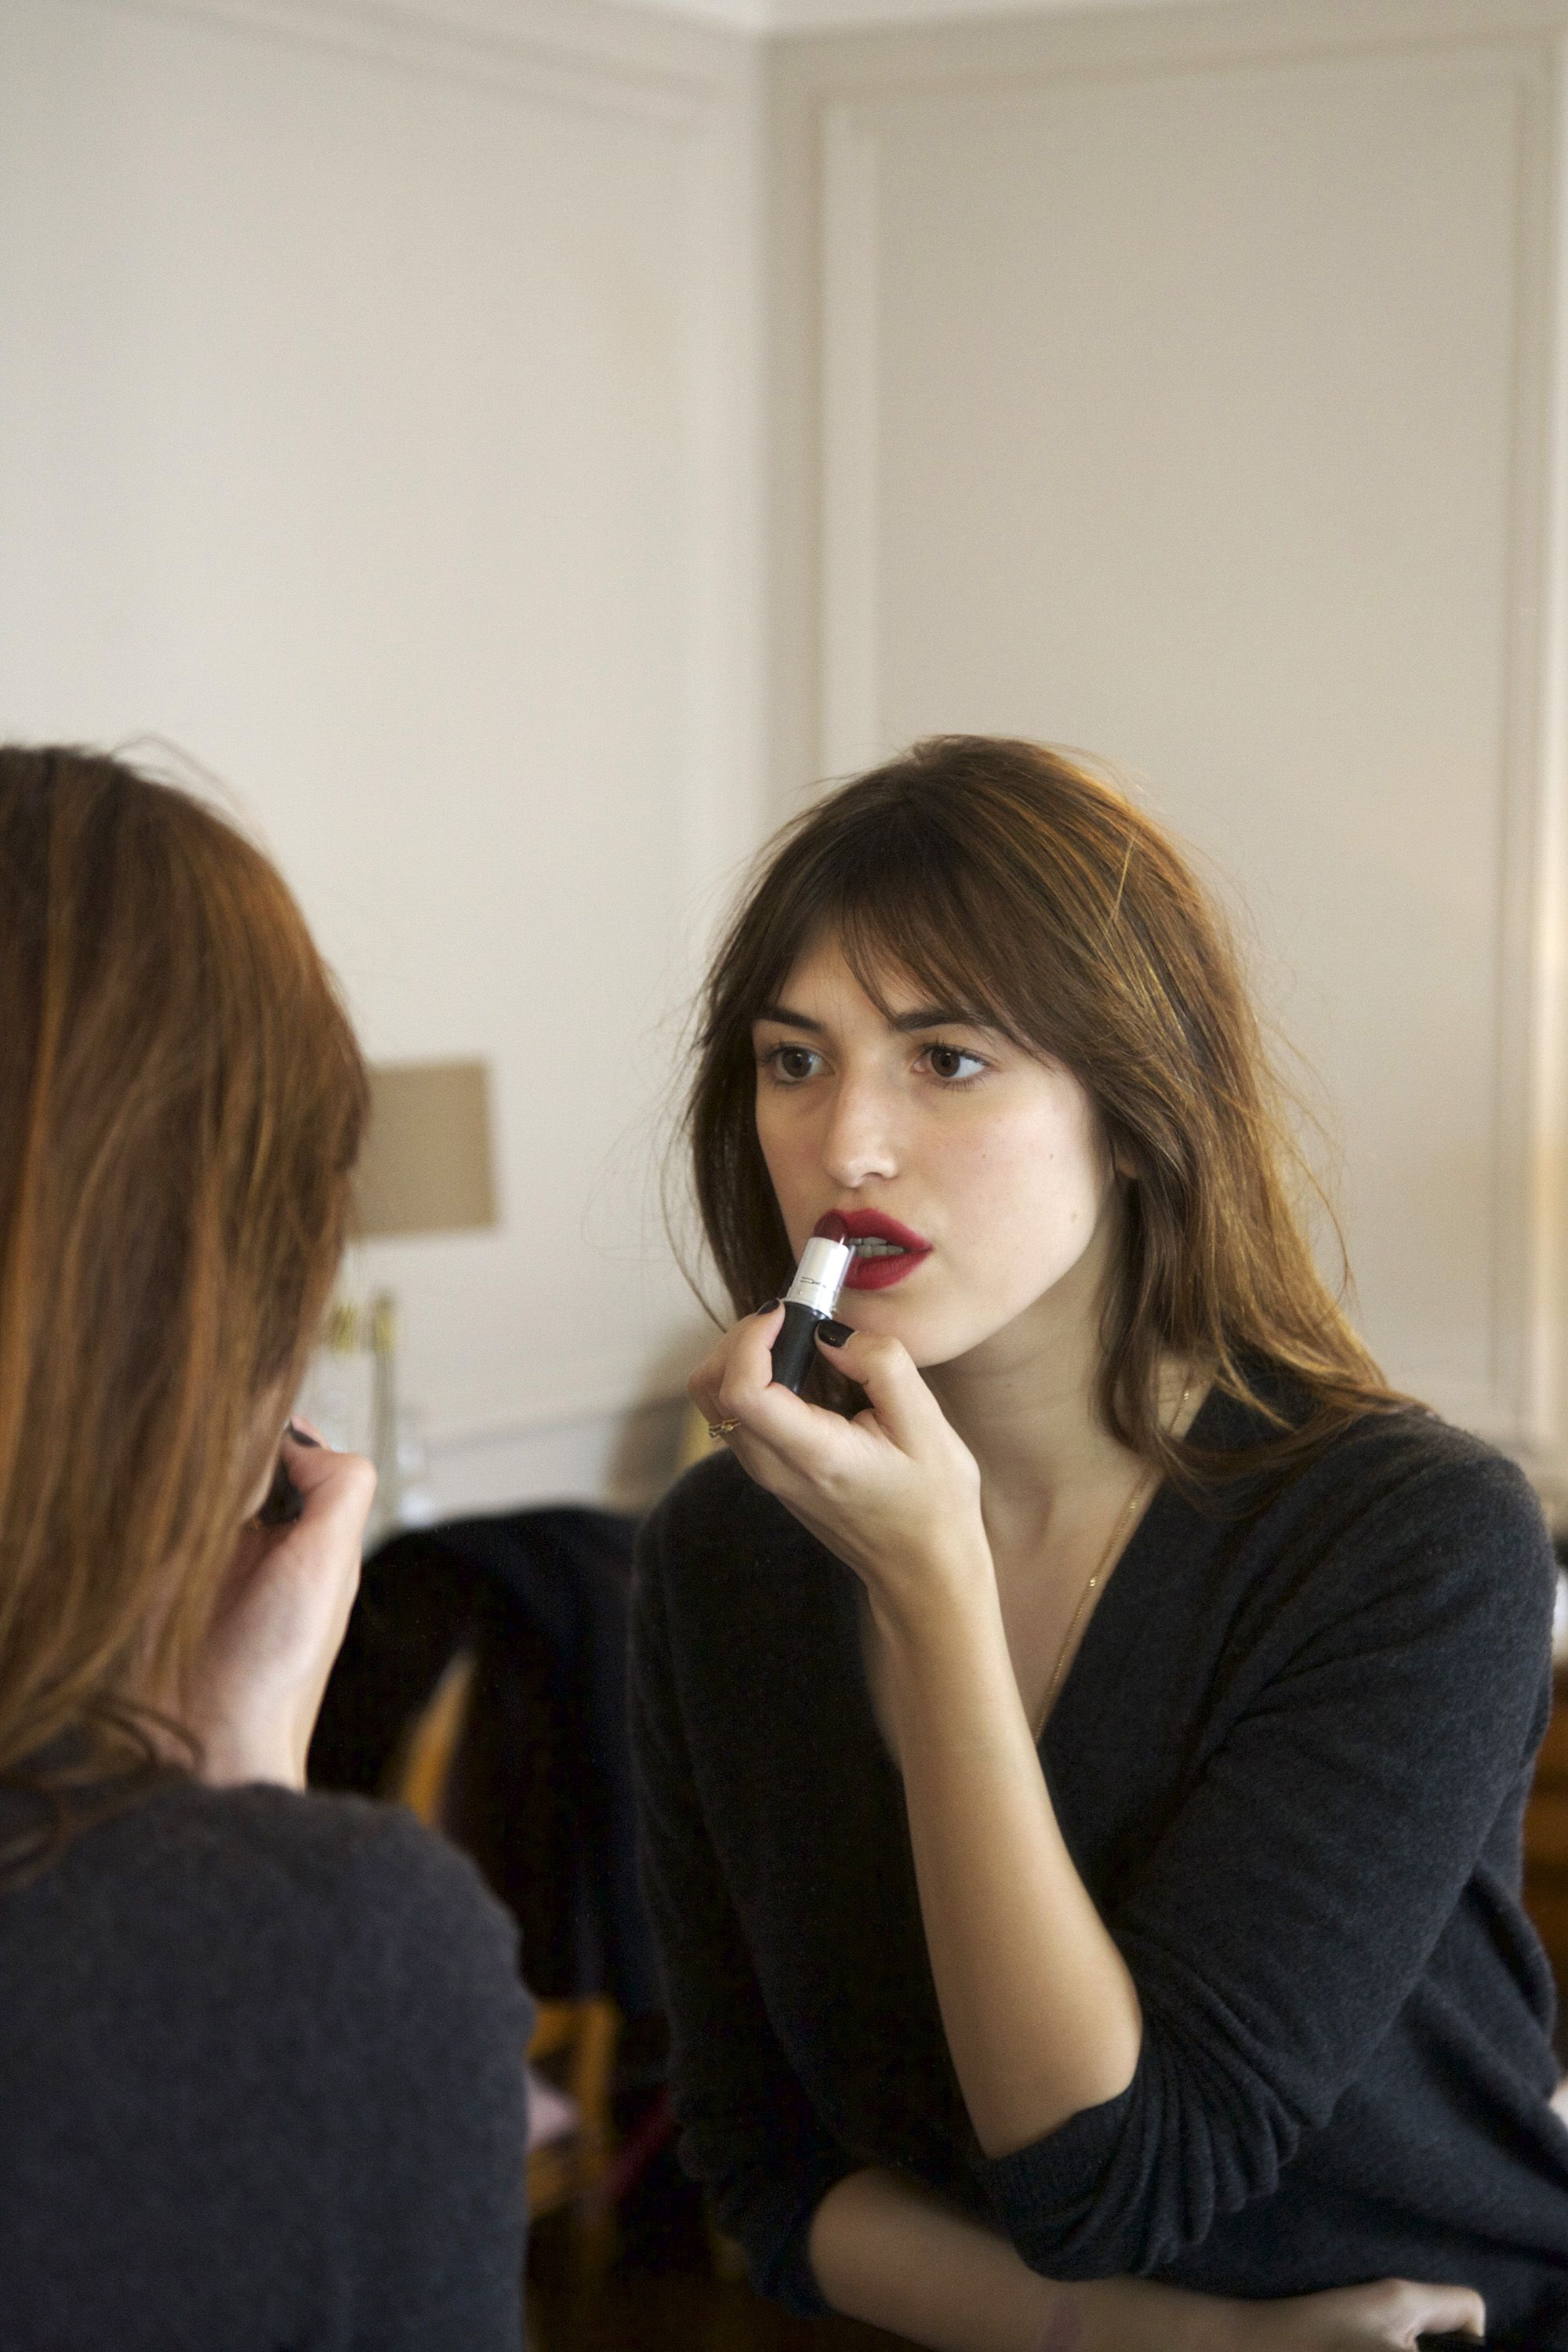 Beauty Vanity: Jeanne Damas